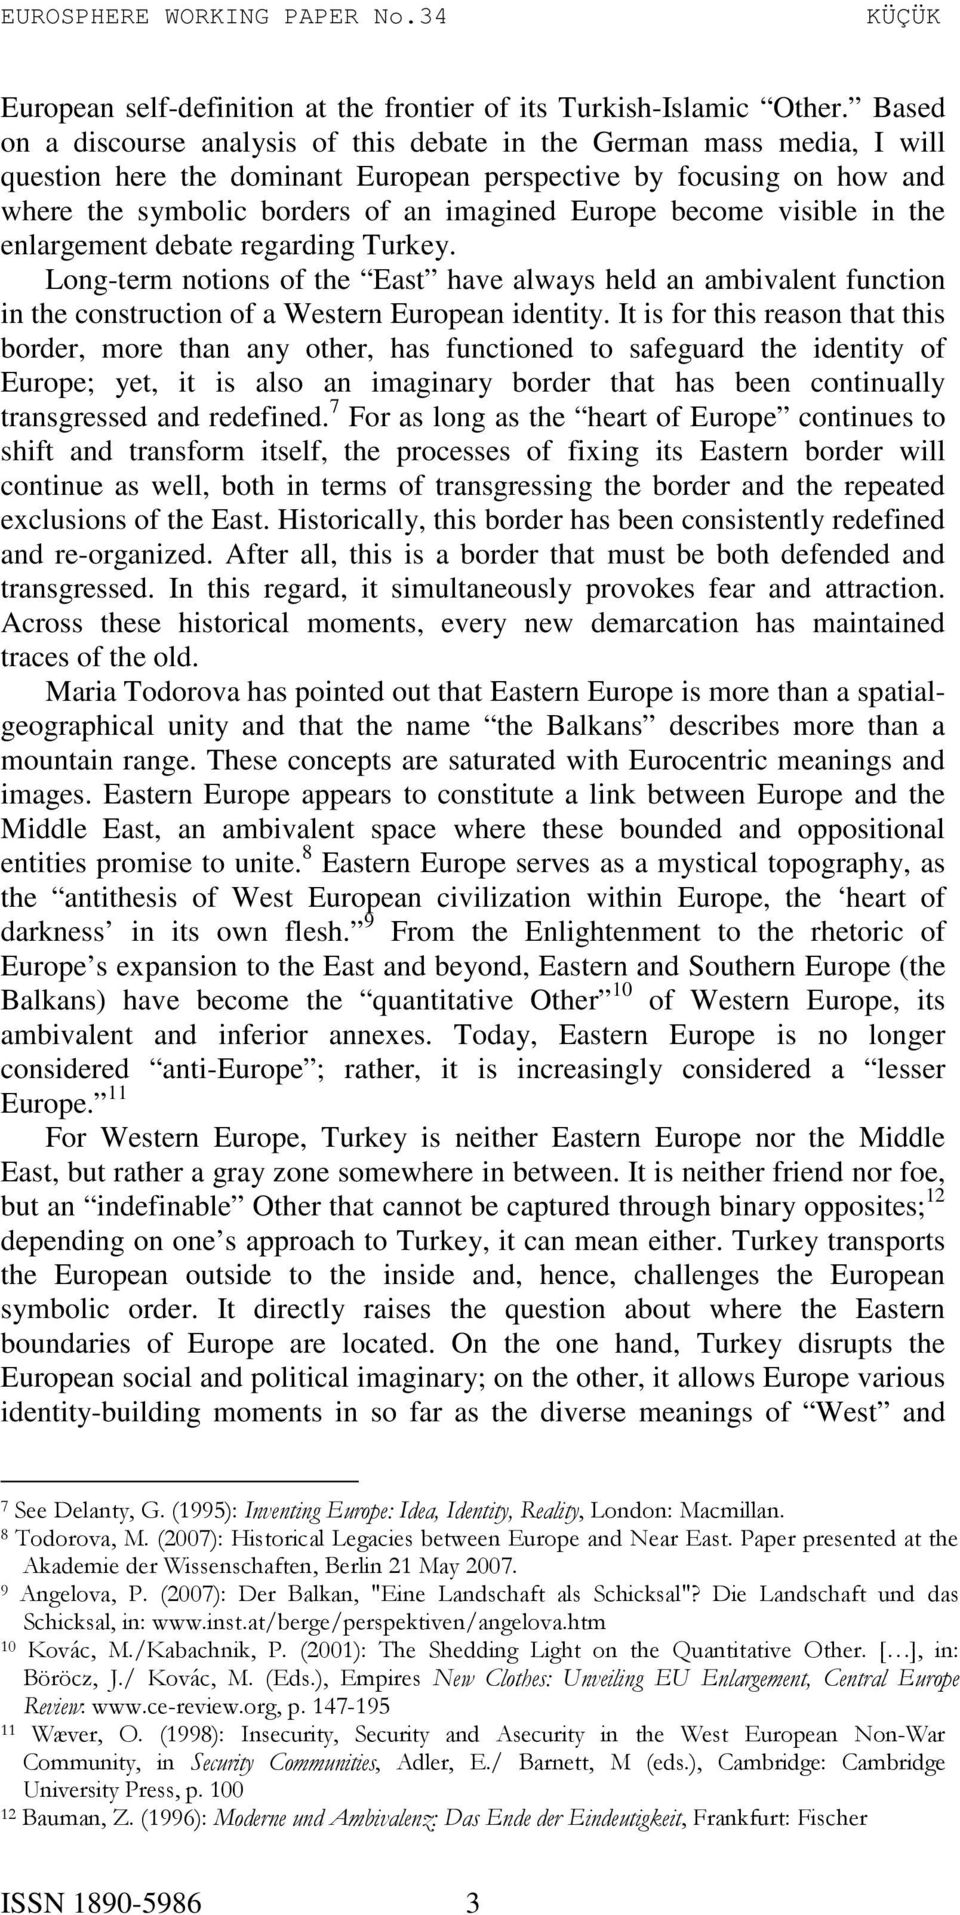 become visible in the enlargement debate regarding Turkey. Long-term notions of the East have always held an ambivalent function in the construction of a Western European identity.